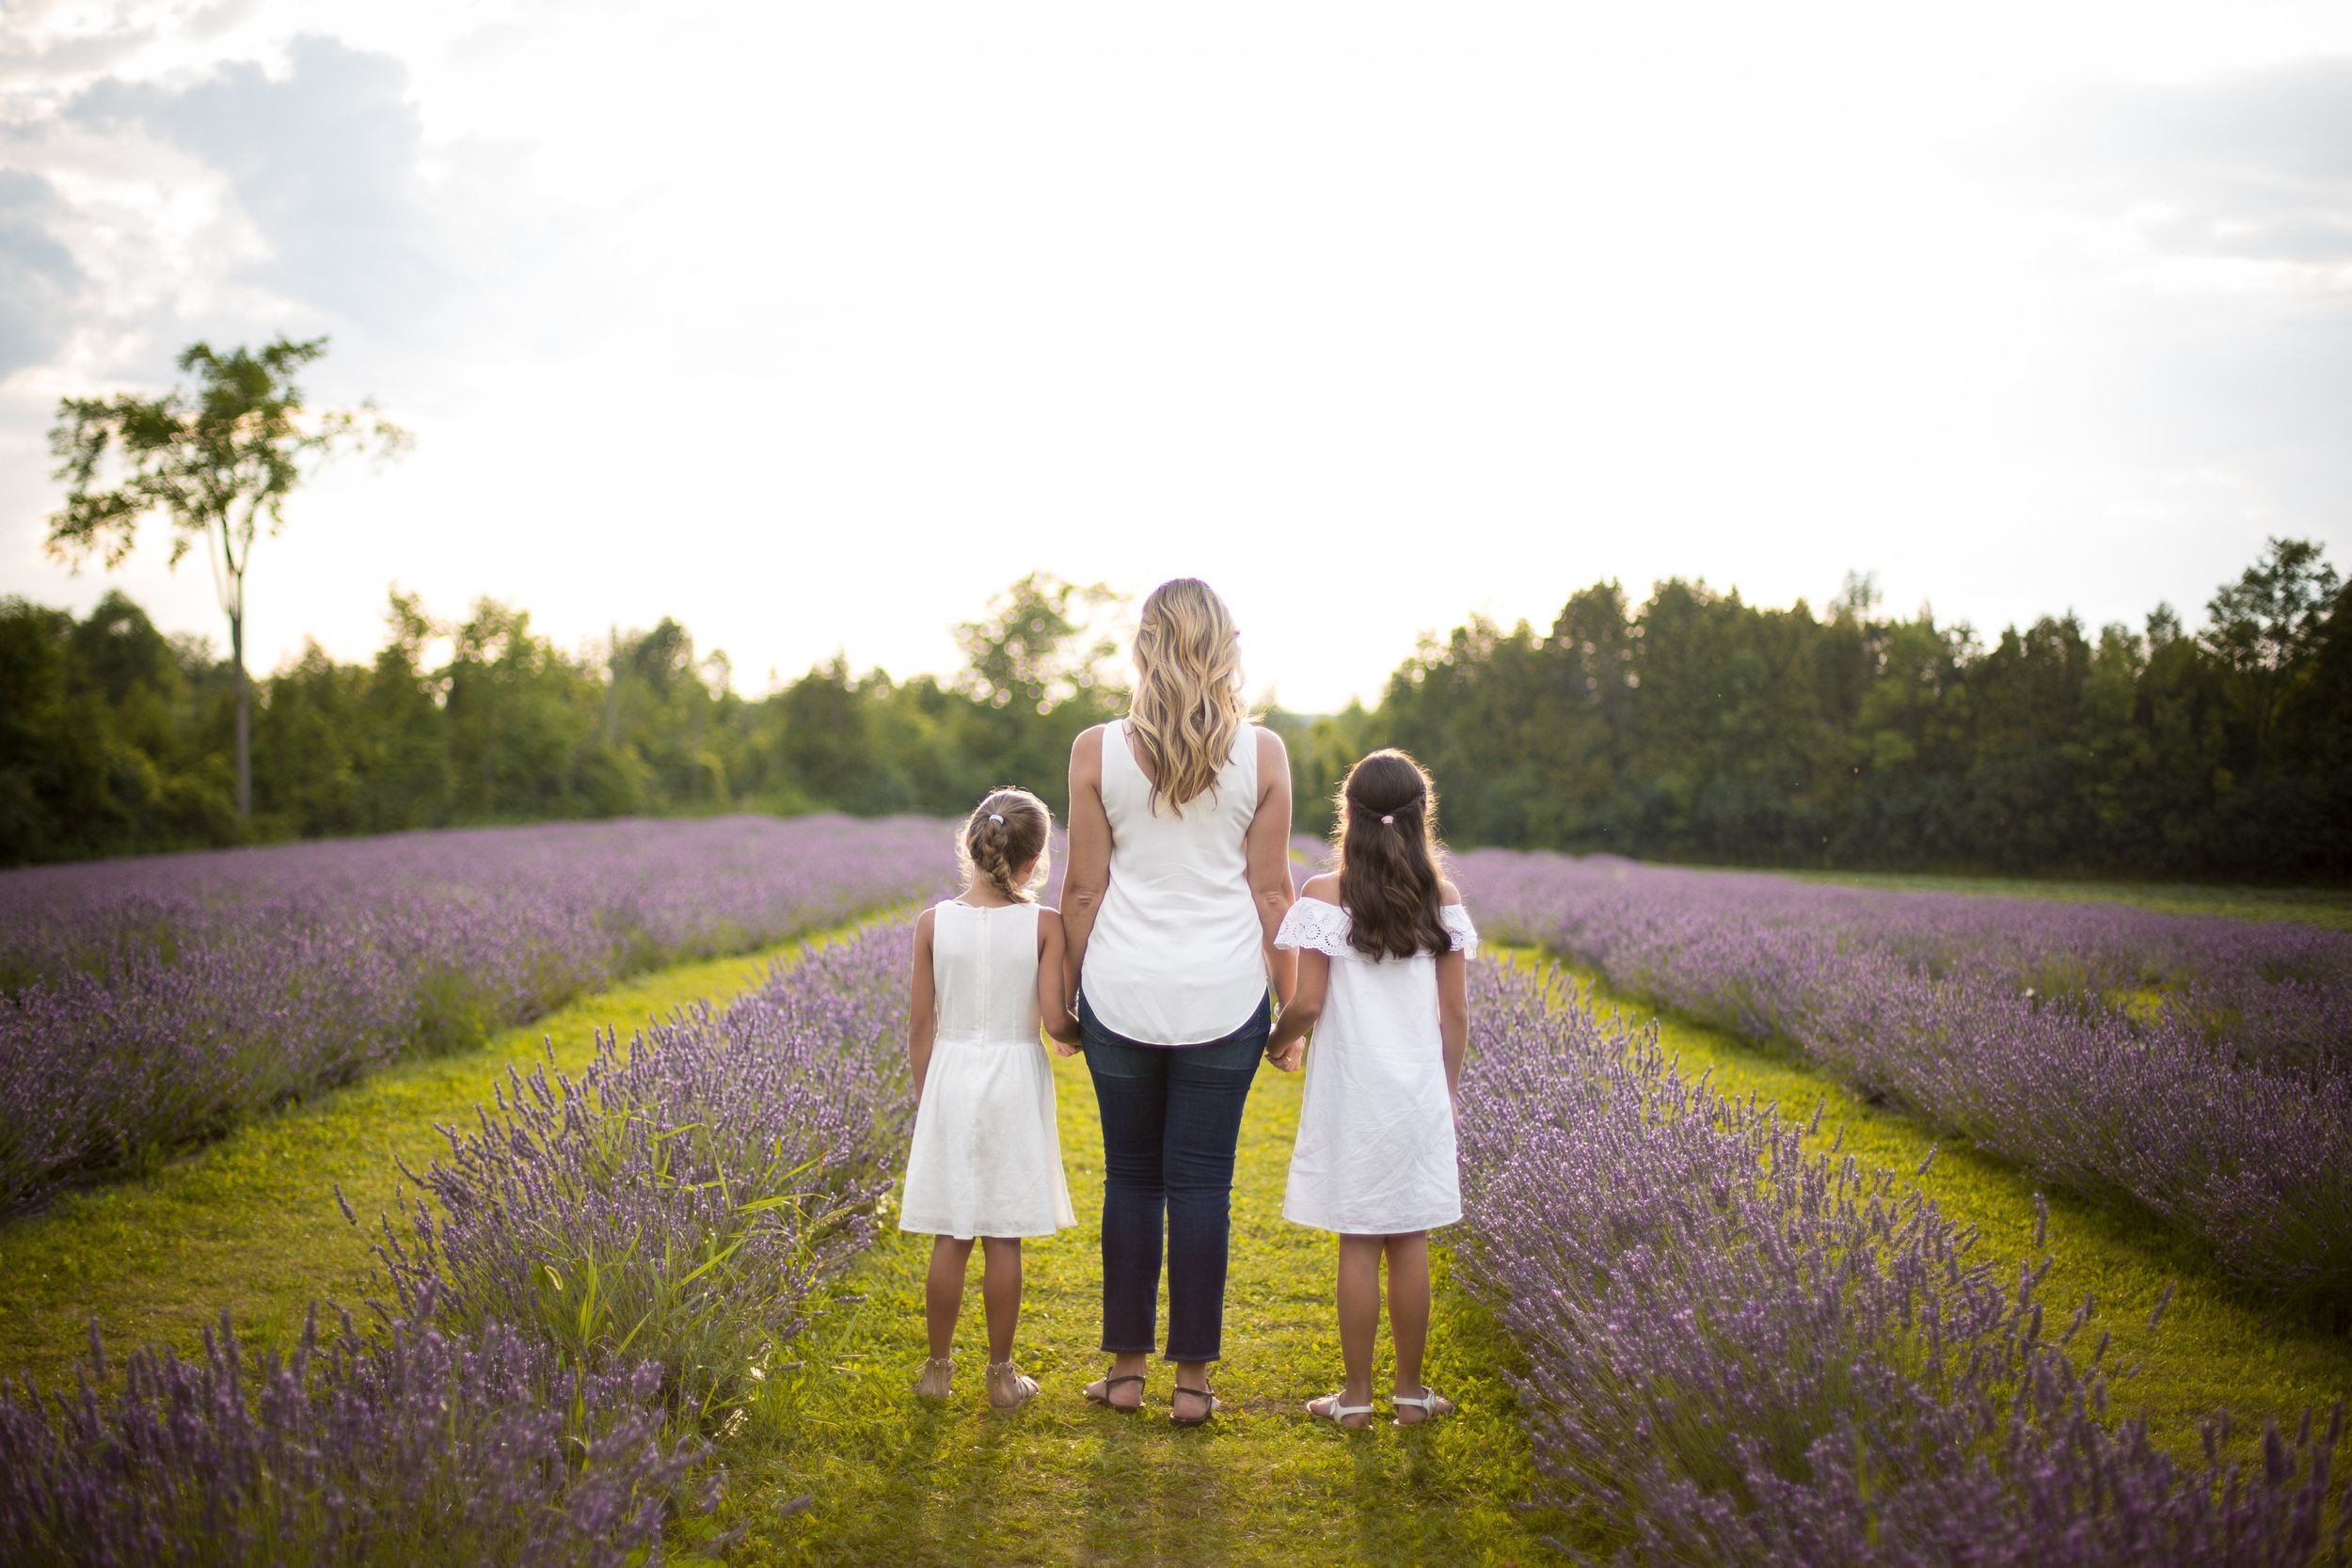 Terre Bleu Lavendar Farm Mother & Daughters